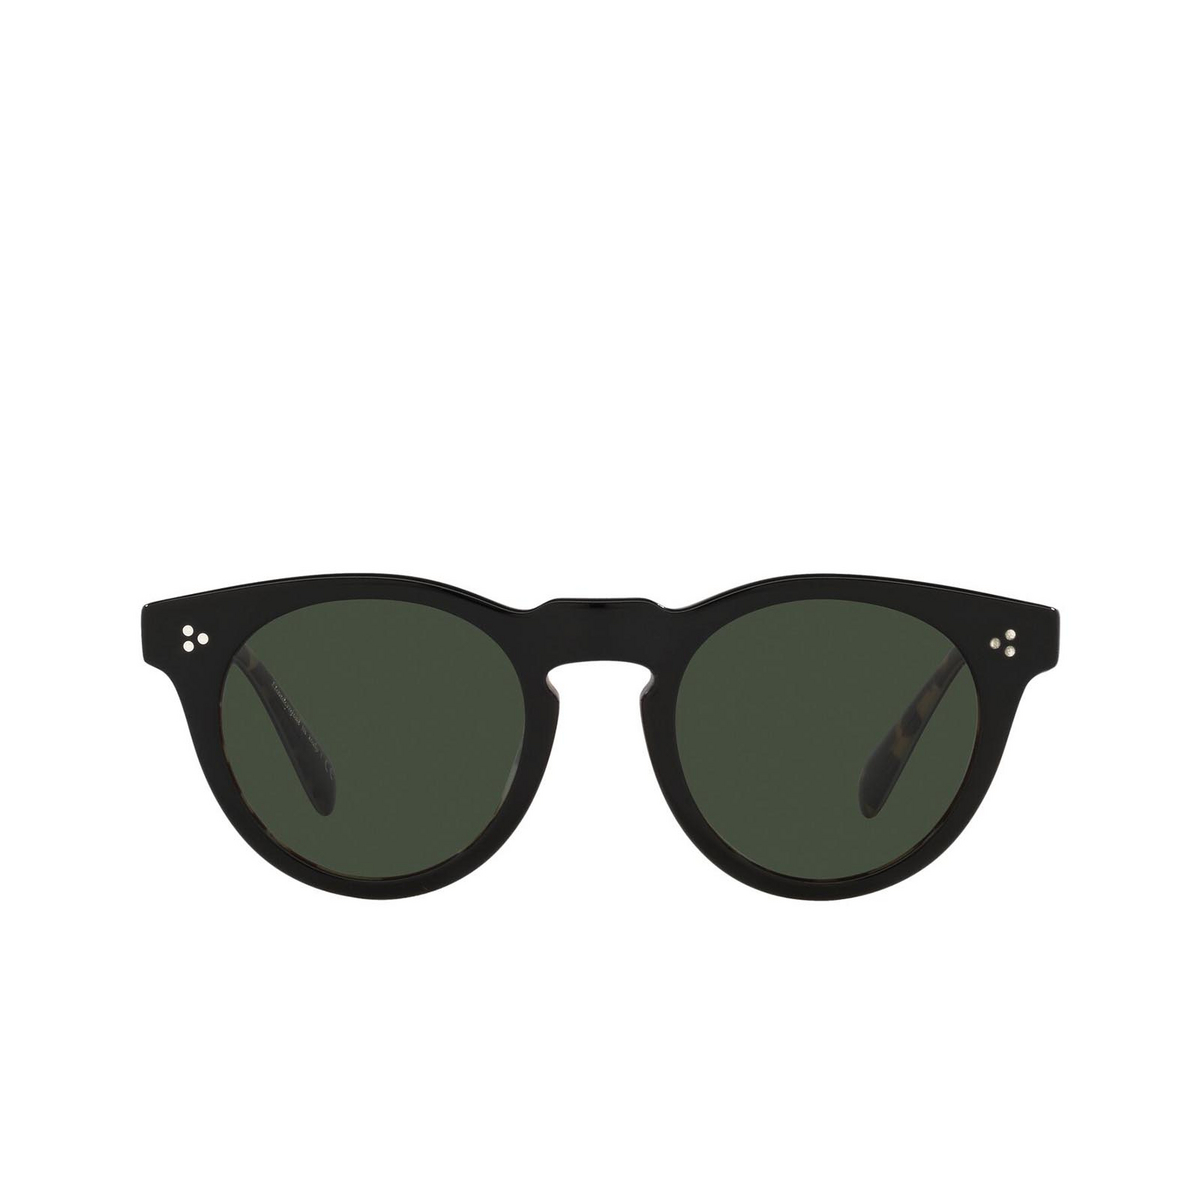 Oliver Peoples® Round Sunglasses: Lewen OV5453SU color Black/dtbk 13099A - front view.